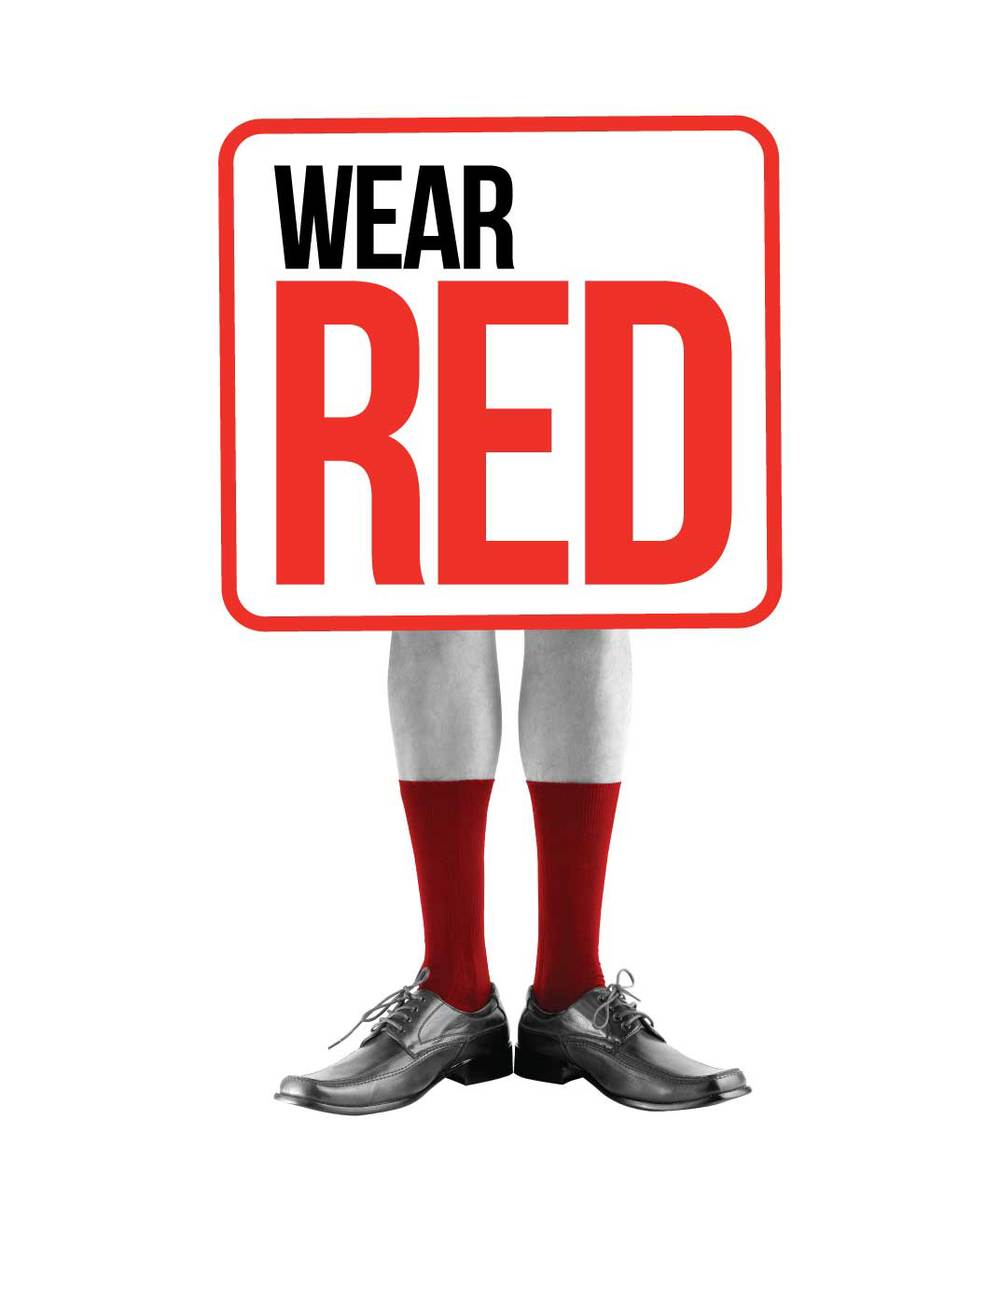 RedR Logo - Wear Red for RedR — Peraux Design